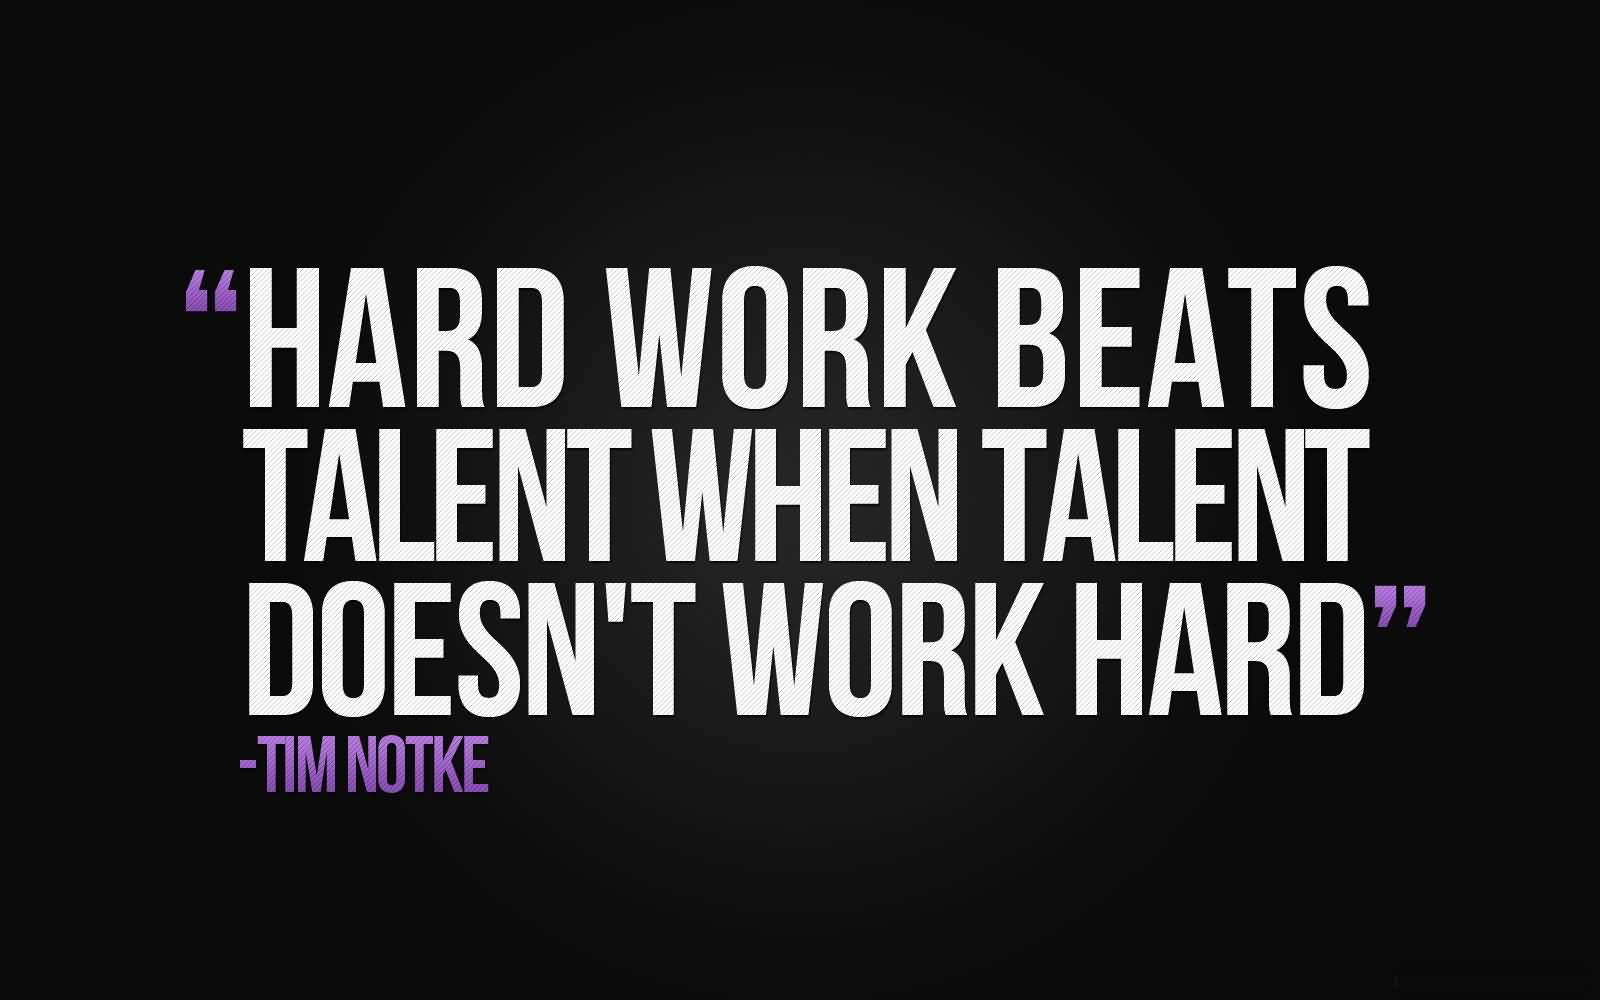 Motivational Quotes About Hard Work And Motivational Sayings About Hard Work Images